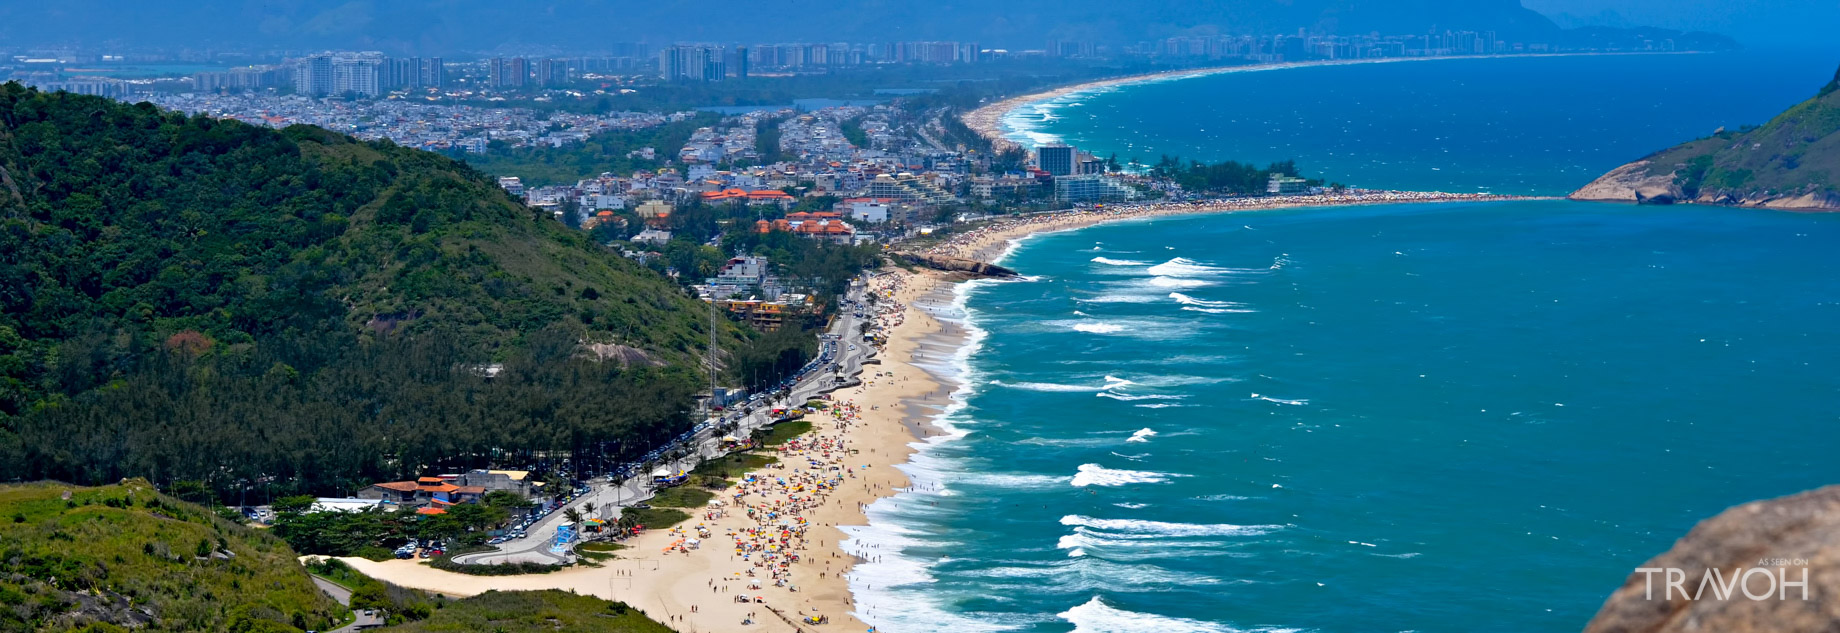 Recreio Beach - Exploring 10 of the Top Beaches in Rio de Janeiro, Brazil